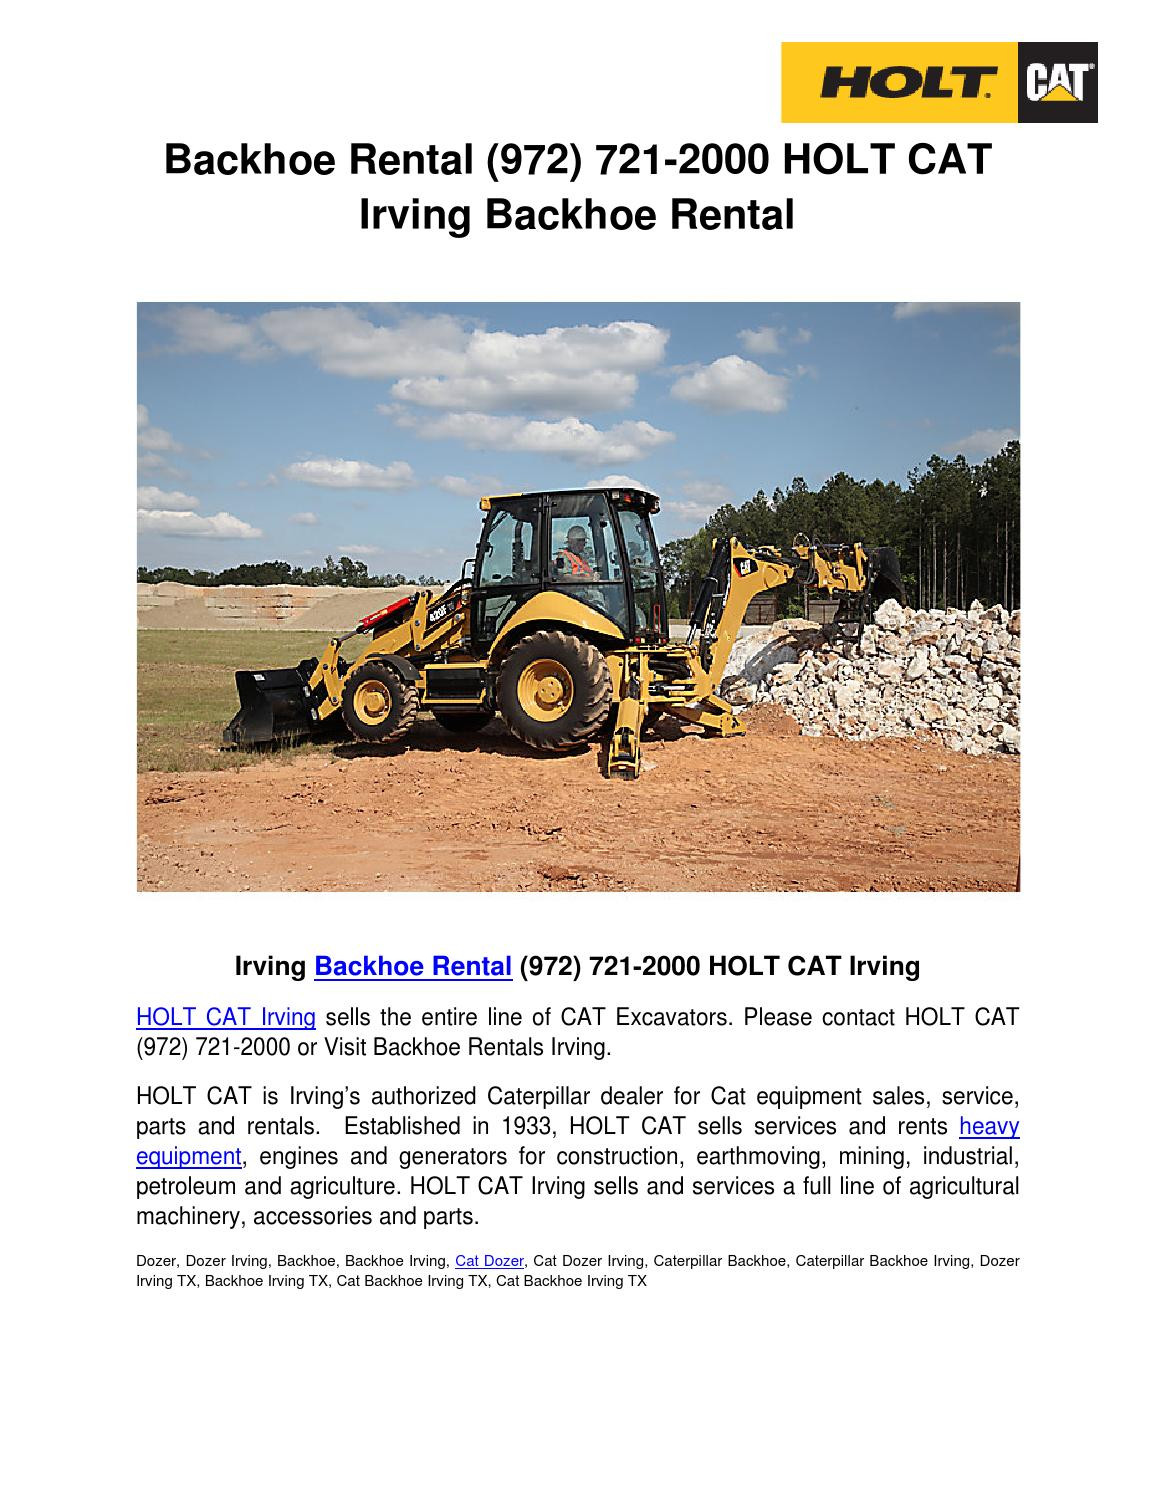 Backhoe rental (972) 721-2000 HOLT CAT Irving Backhoe by